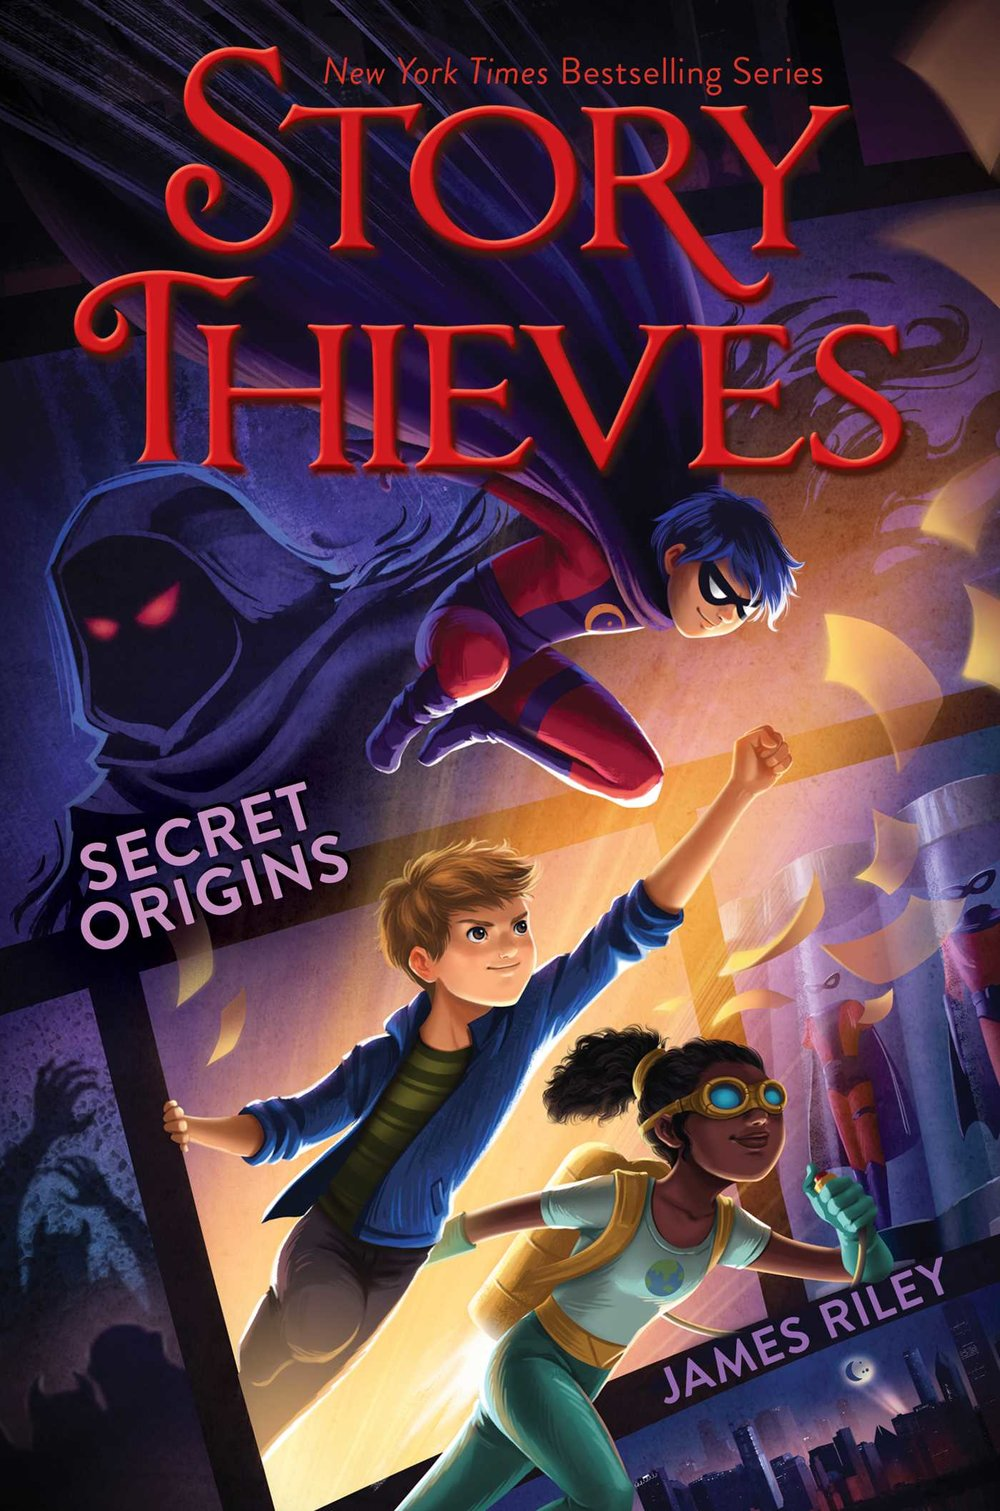 STORY THIEVES: SECRET ORIGINS (BOOK 3) - Owen and Bethany have sworn off jumping into books for good. But they didn't make any promises about not jumping through strange portals that lead to a comic book world.Jupiter City was once filled with brightly costumed superheroes and villains, but nowadays, there's nothing left but the Dark. Even the villains are terrified of the Dark's shadows, and most of the heroes have either disappeared or been lost to mind control. The one hero who might have stopped all of this, Doc Twilight, has been imprisoned by the Dark.But who is Doc Twilight really? And how can Bethany and Owen defeat the Dark without superpowers of their own? They'll definitely need the help of some old friends and new allies to bring the light back to Jupiter City, and find out the truth behind the Dark.It all comes back to Bethany's own secret origins. What really happened when her fictional father disappeared years ago? Who is Nobody, and why is he writing these Story Thieves books? And what kind of supervillain name is The Rotten Banana?BUY: AMAZON | BARNES & NOBLE | INDEPENDENT STORES